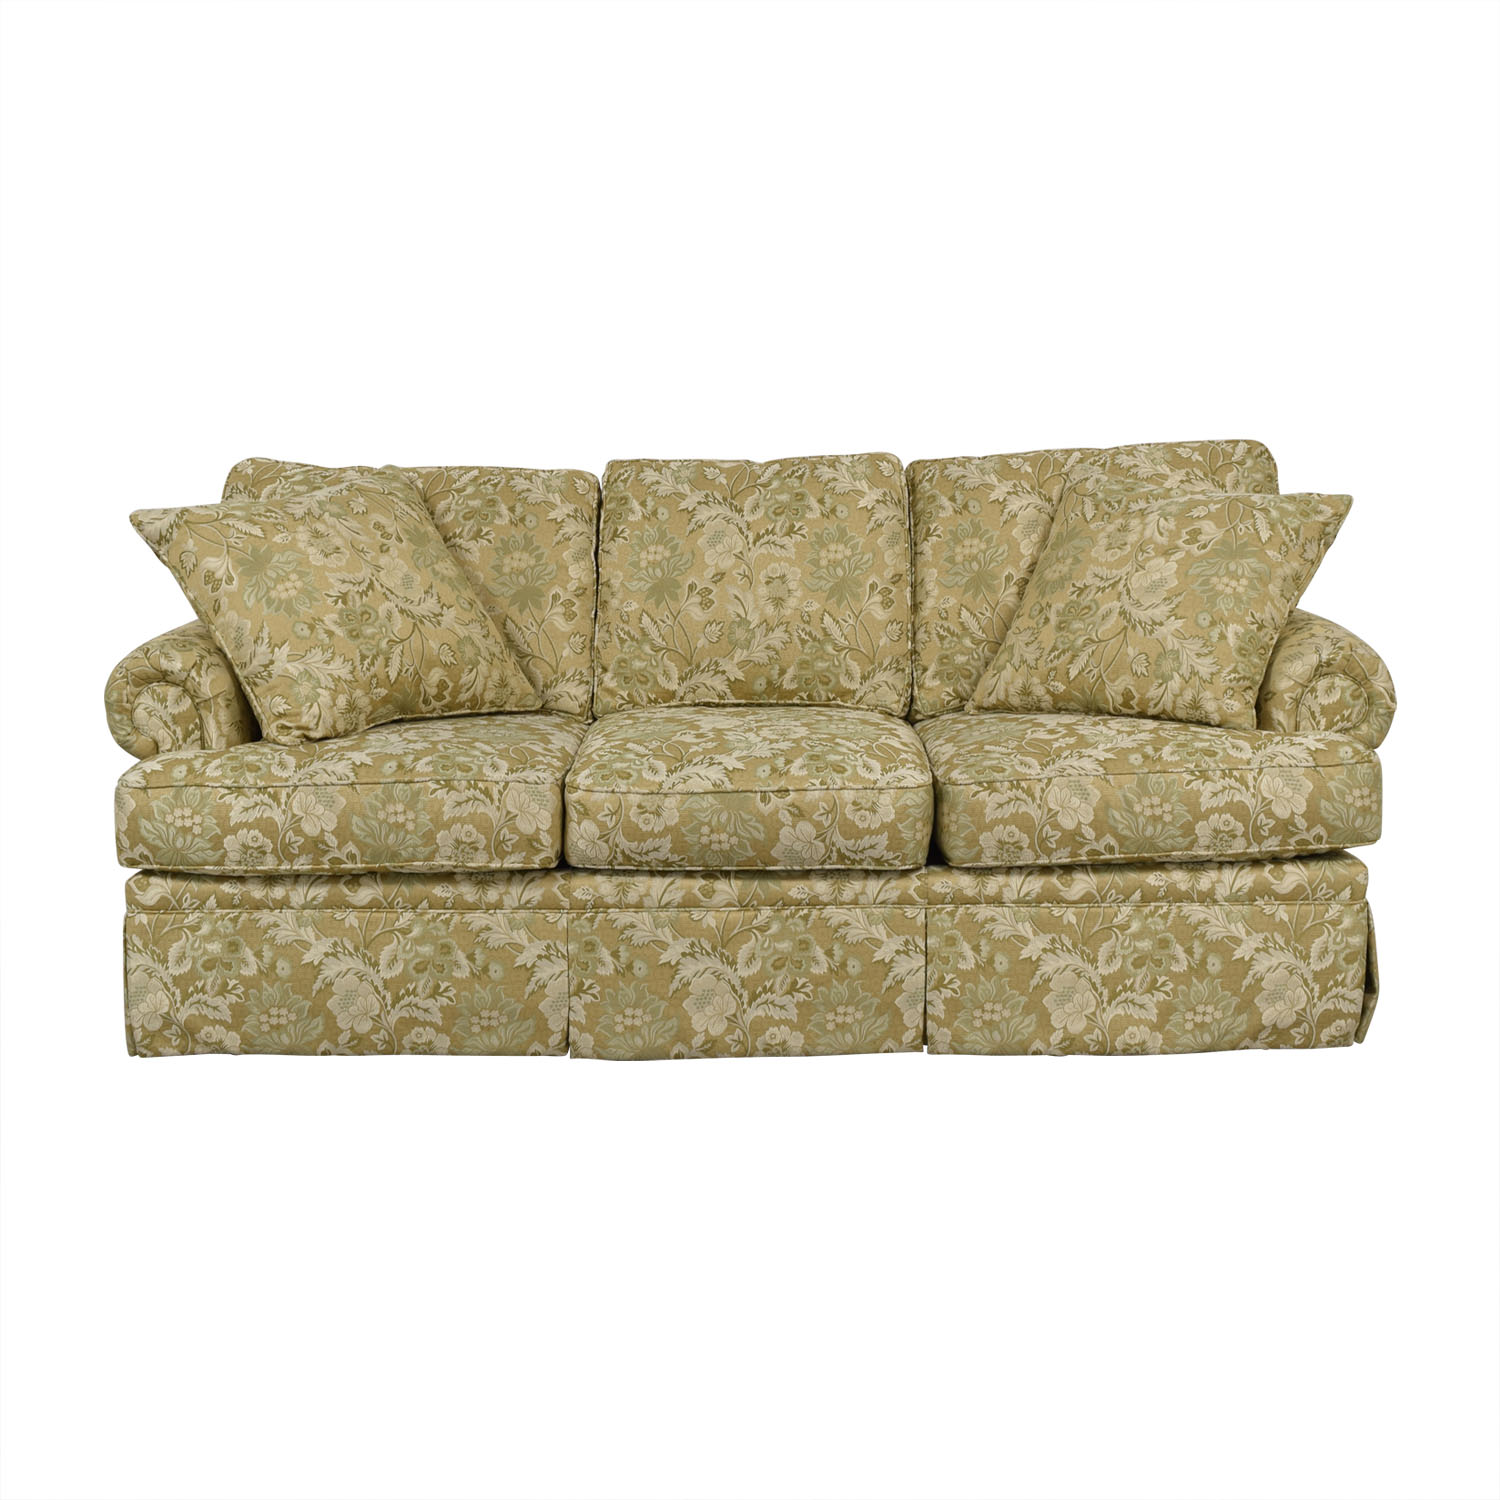 Drexel Heritage Drexel Heritage Natalie Gold Floral Three-Cushion Sofa nj